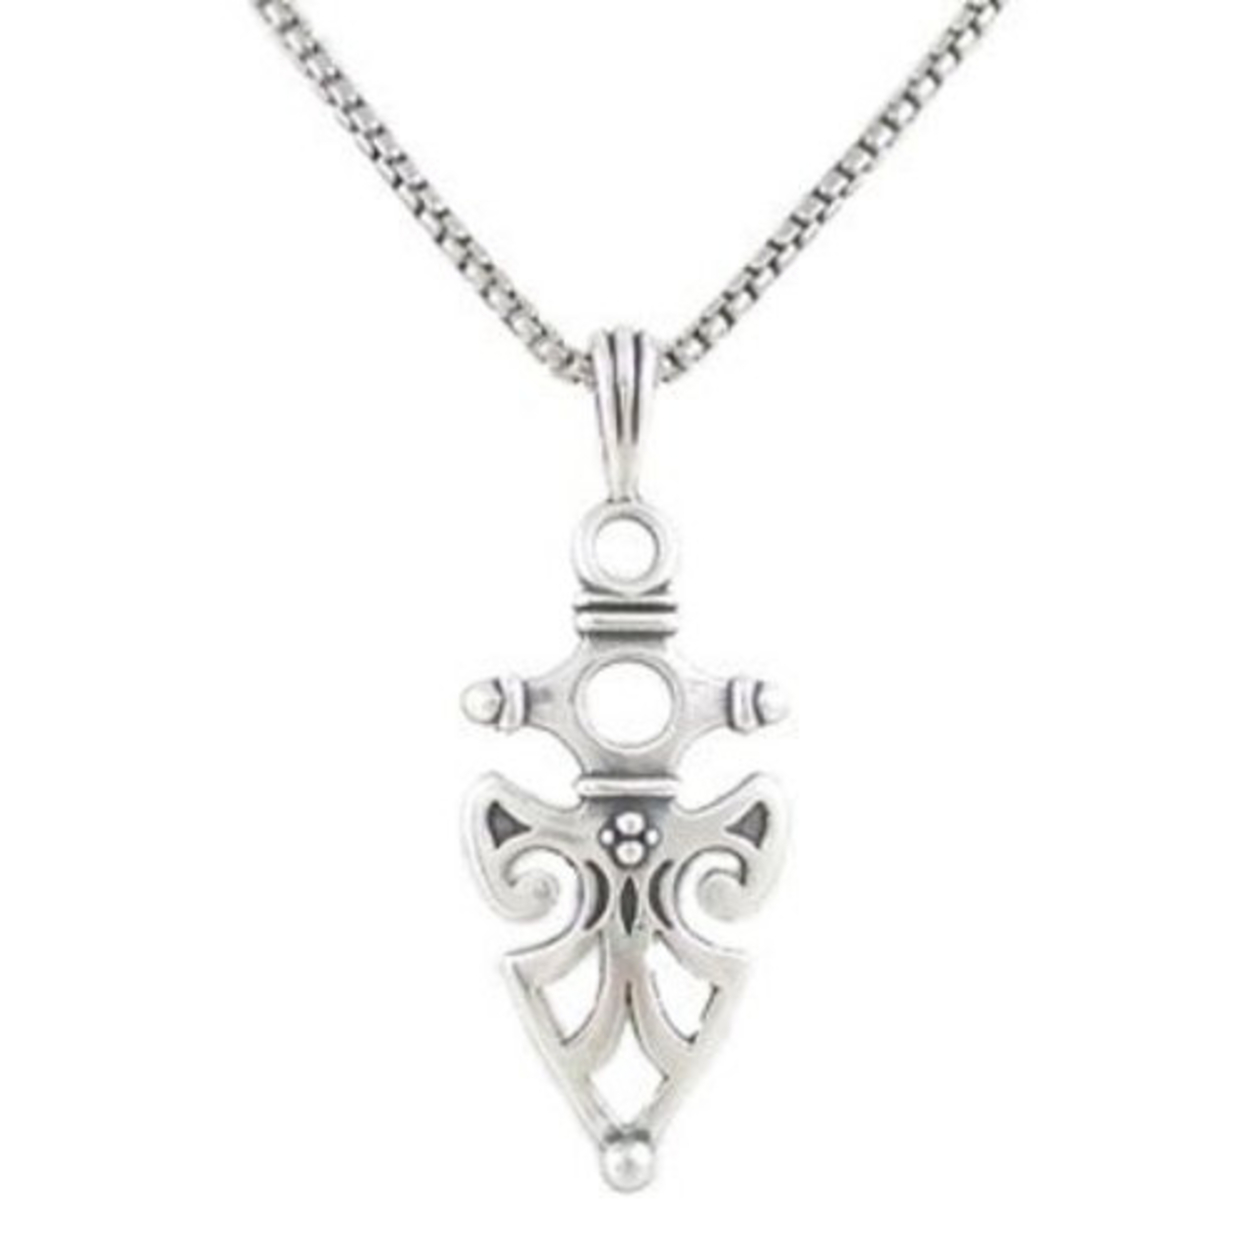 Celtic Arrowhead Protection Necklace In Sterling Silver, #8203